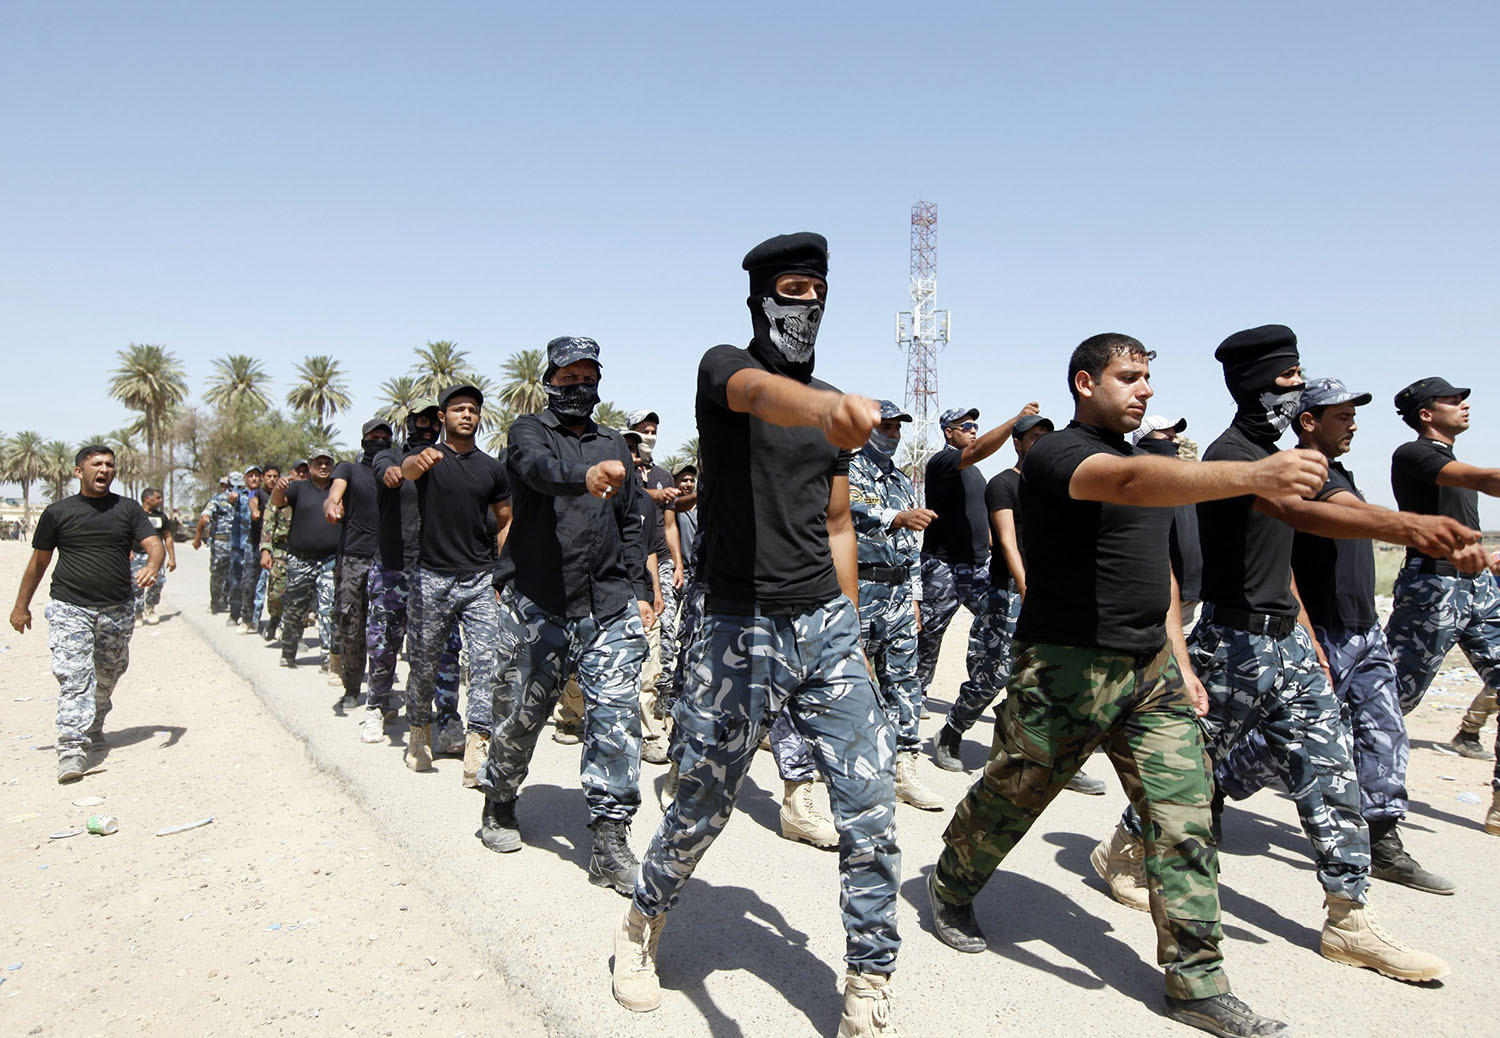 Shi'ite volunteers, who have joined the Iraqi army to fight against militants of the Islamic State, formerly known as the Islamic State of Iraq and the Levant, march during training in Baghdad on July 9.